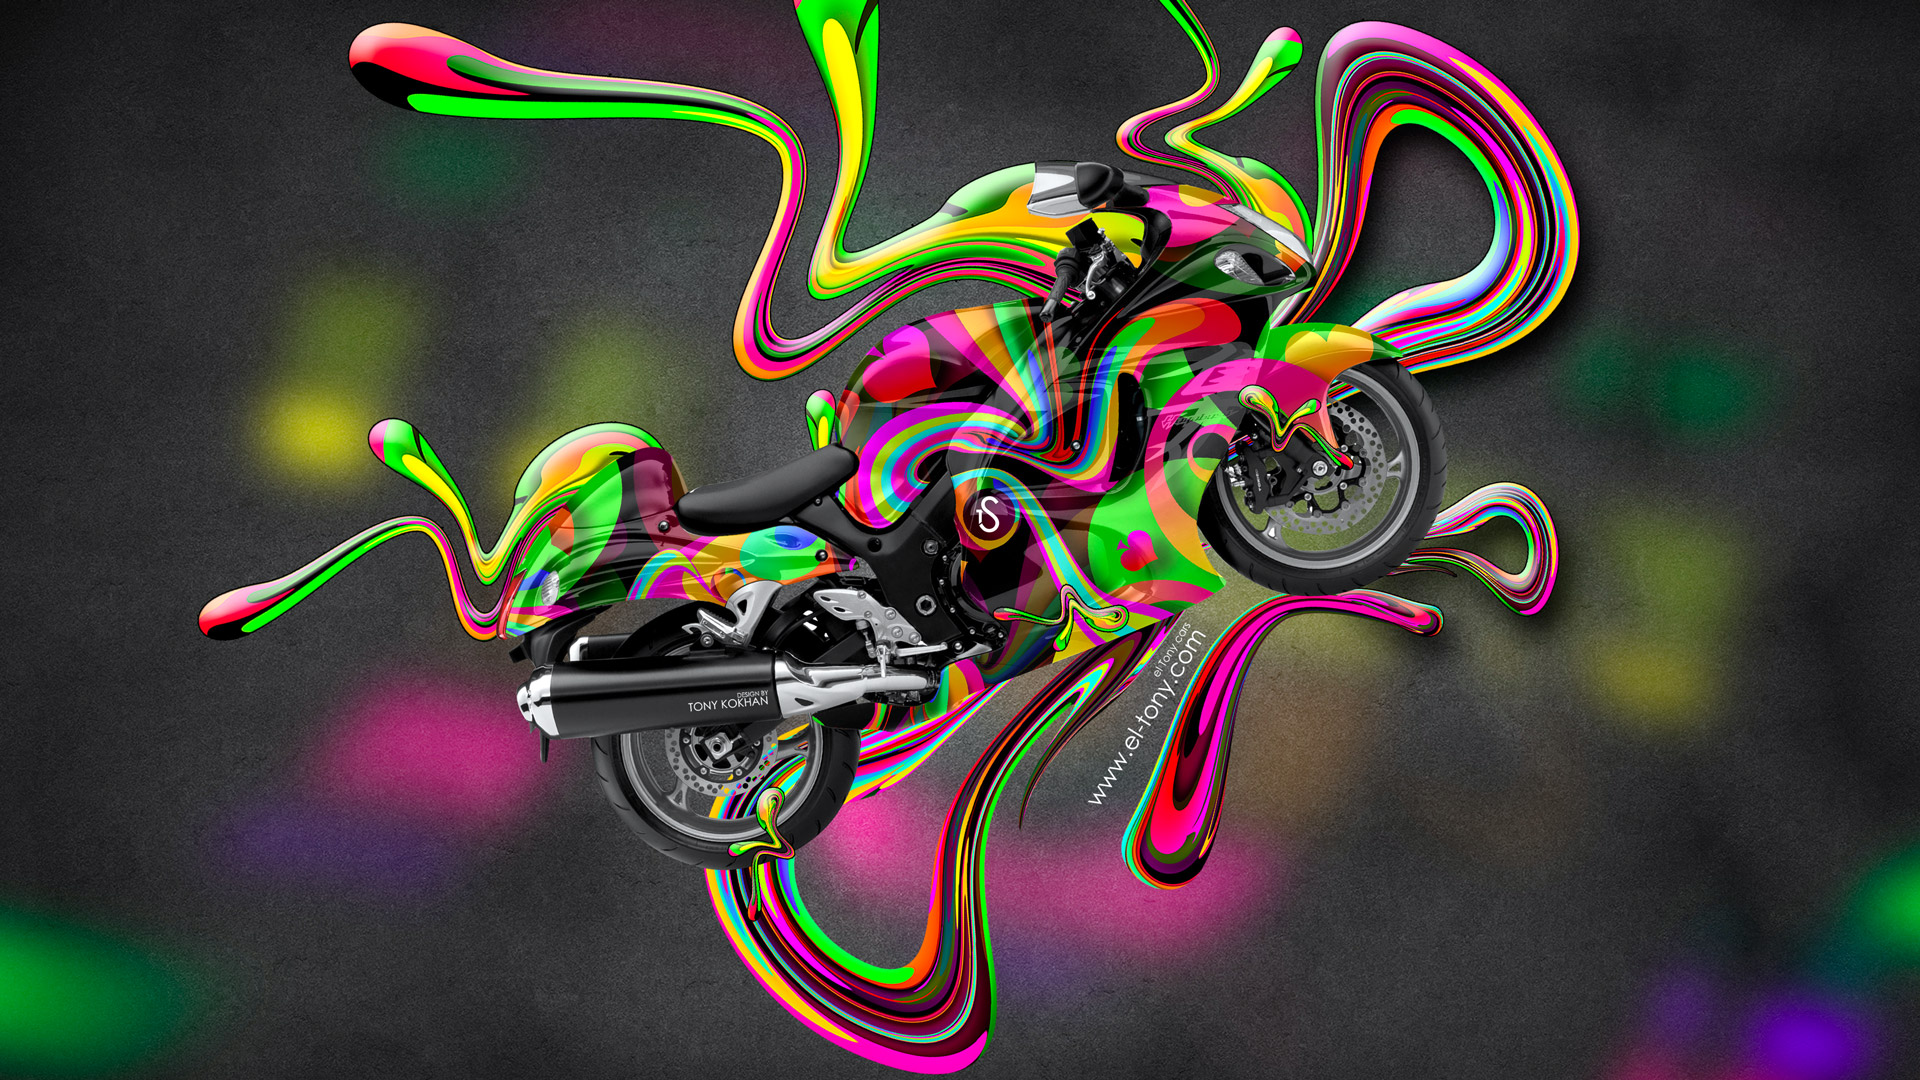 Moto Suzuki Hayabusa Side Super Abstract Aerography Plastic